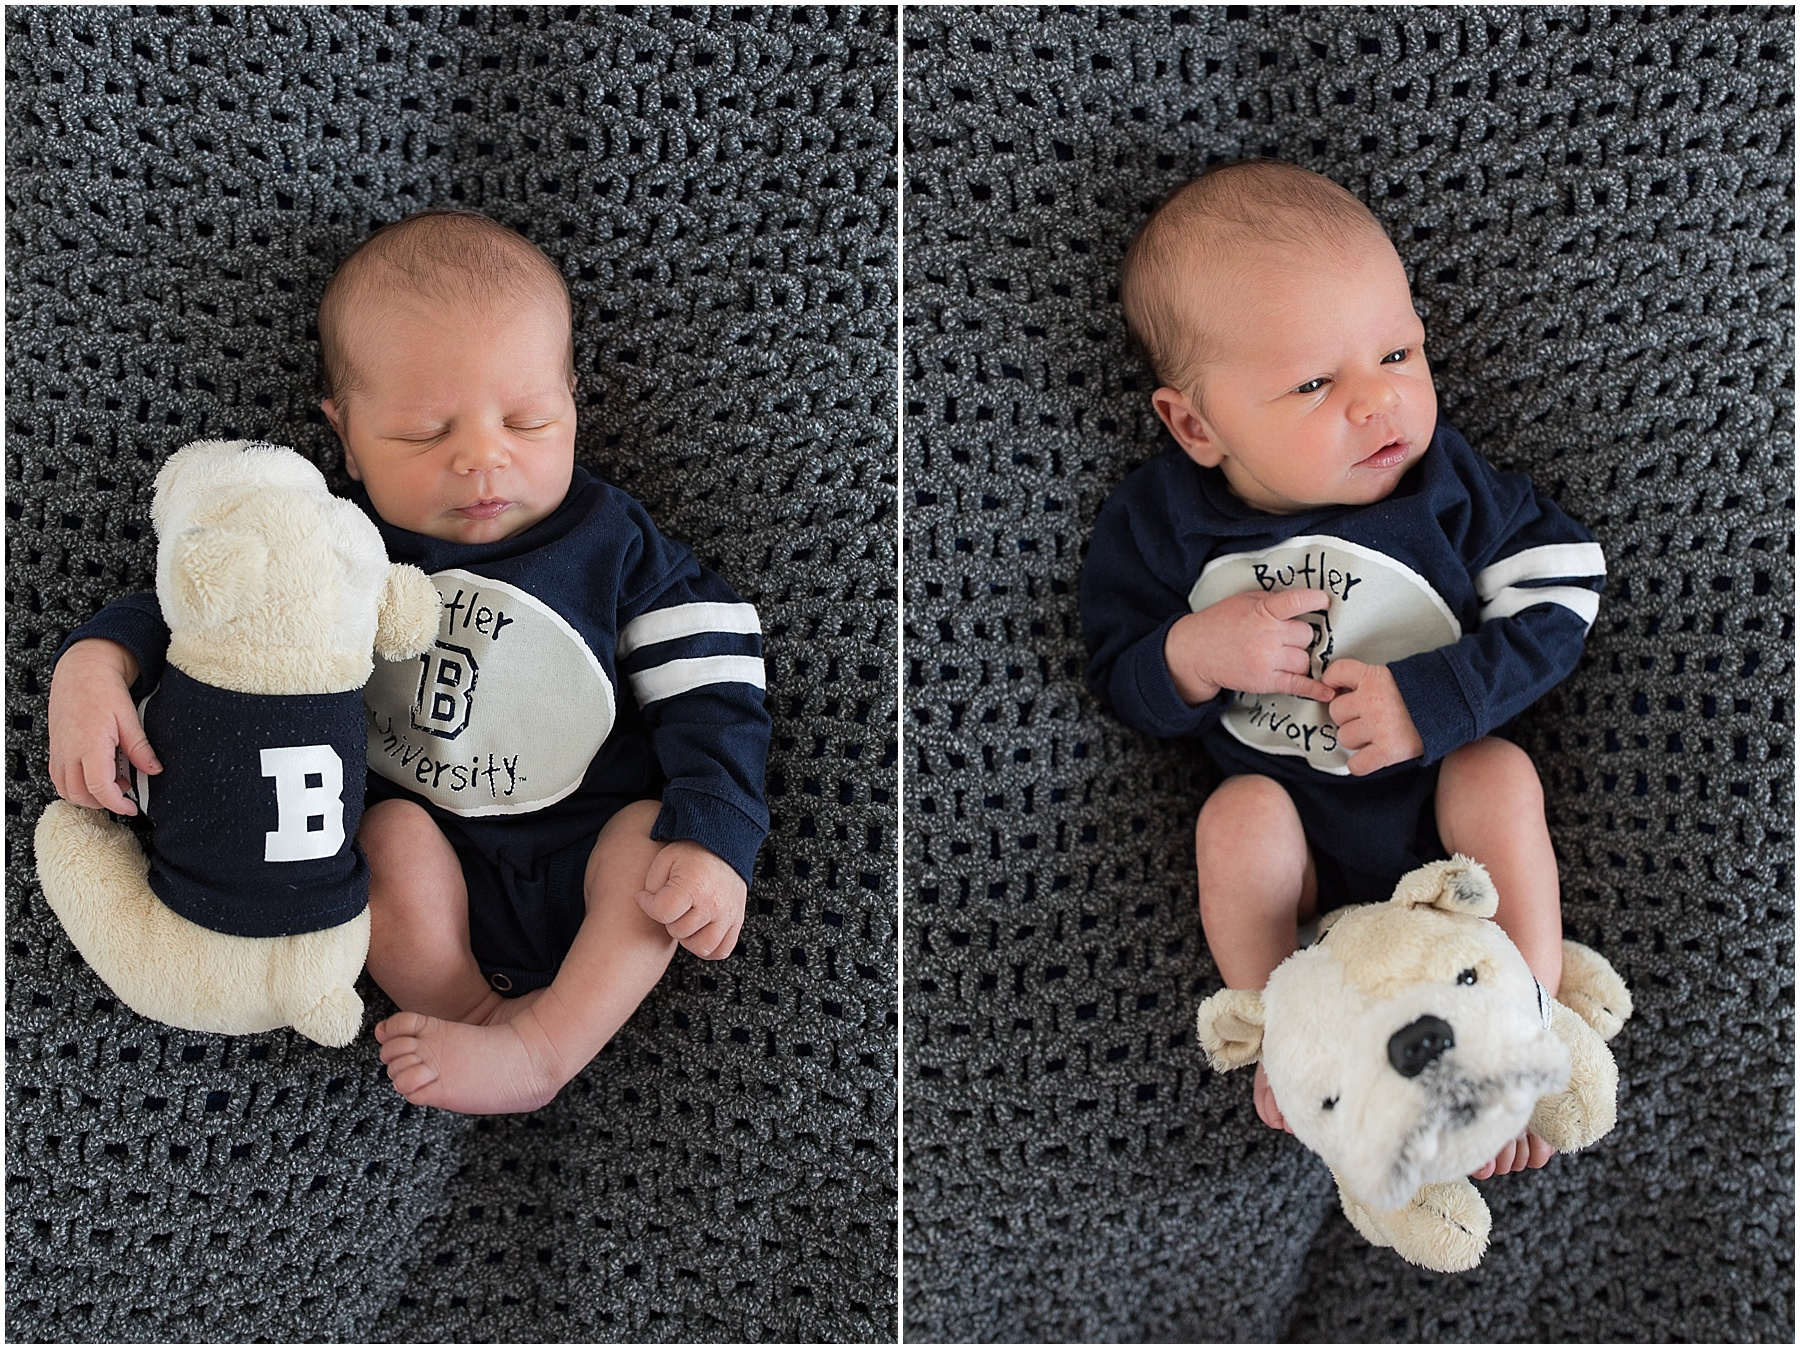 Newborn baby boy and his Butler stuffed animal, Indianapolis Newborn Photography, Raindancer Studios